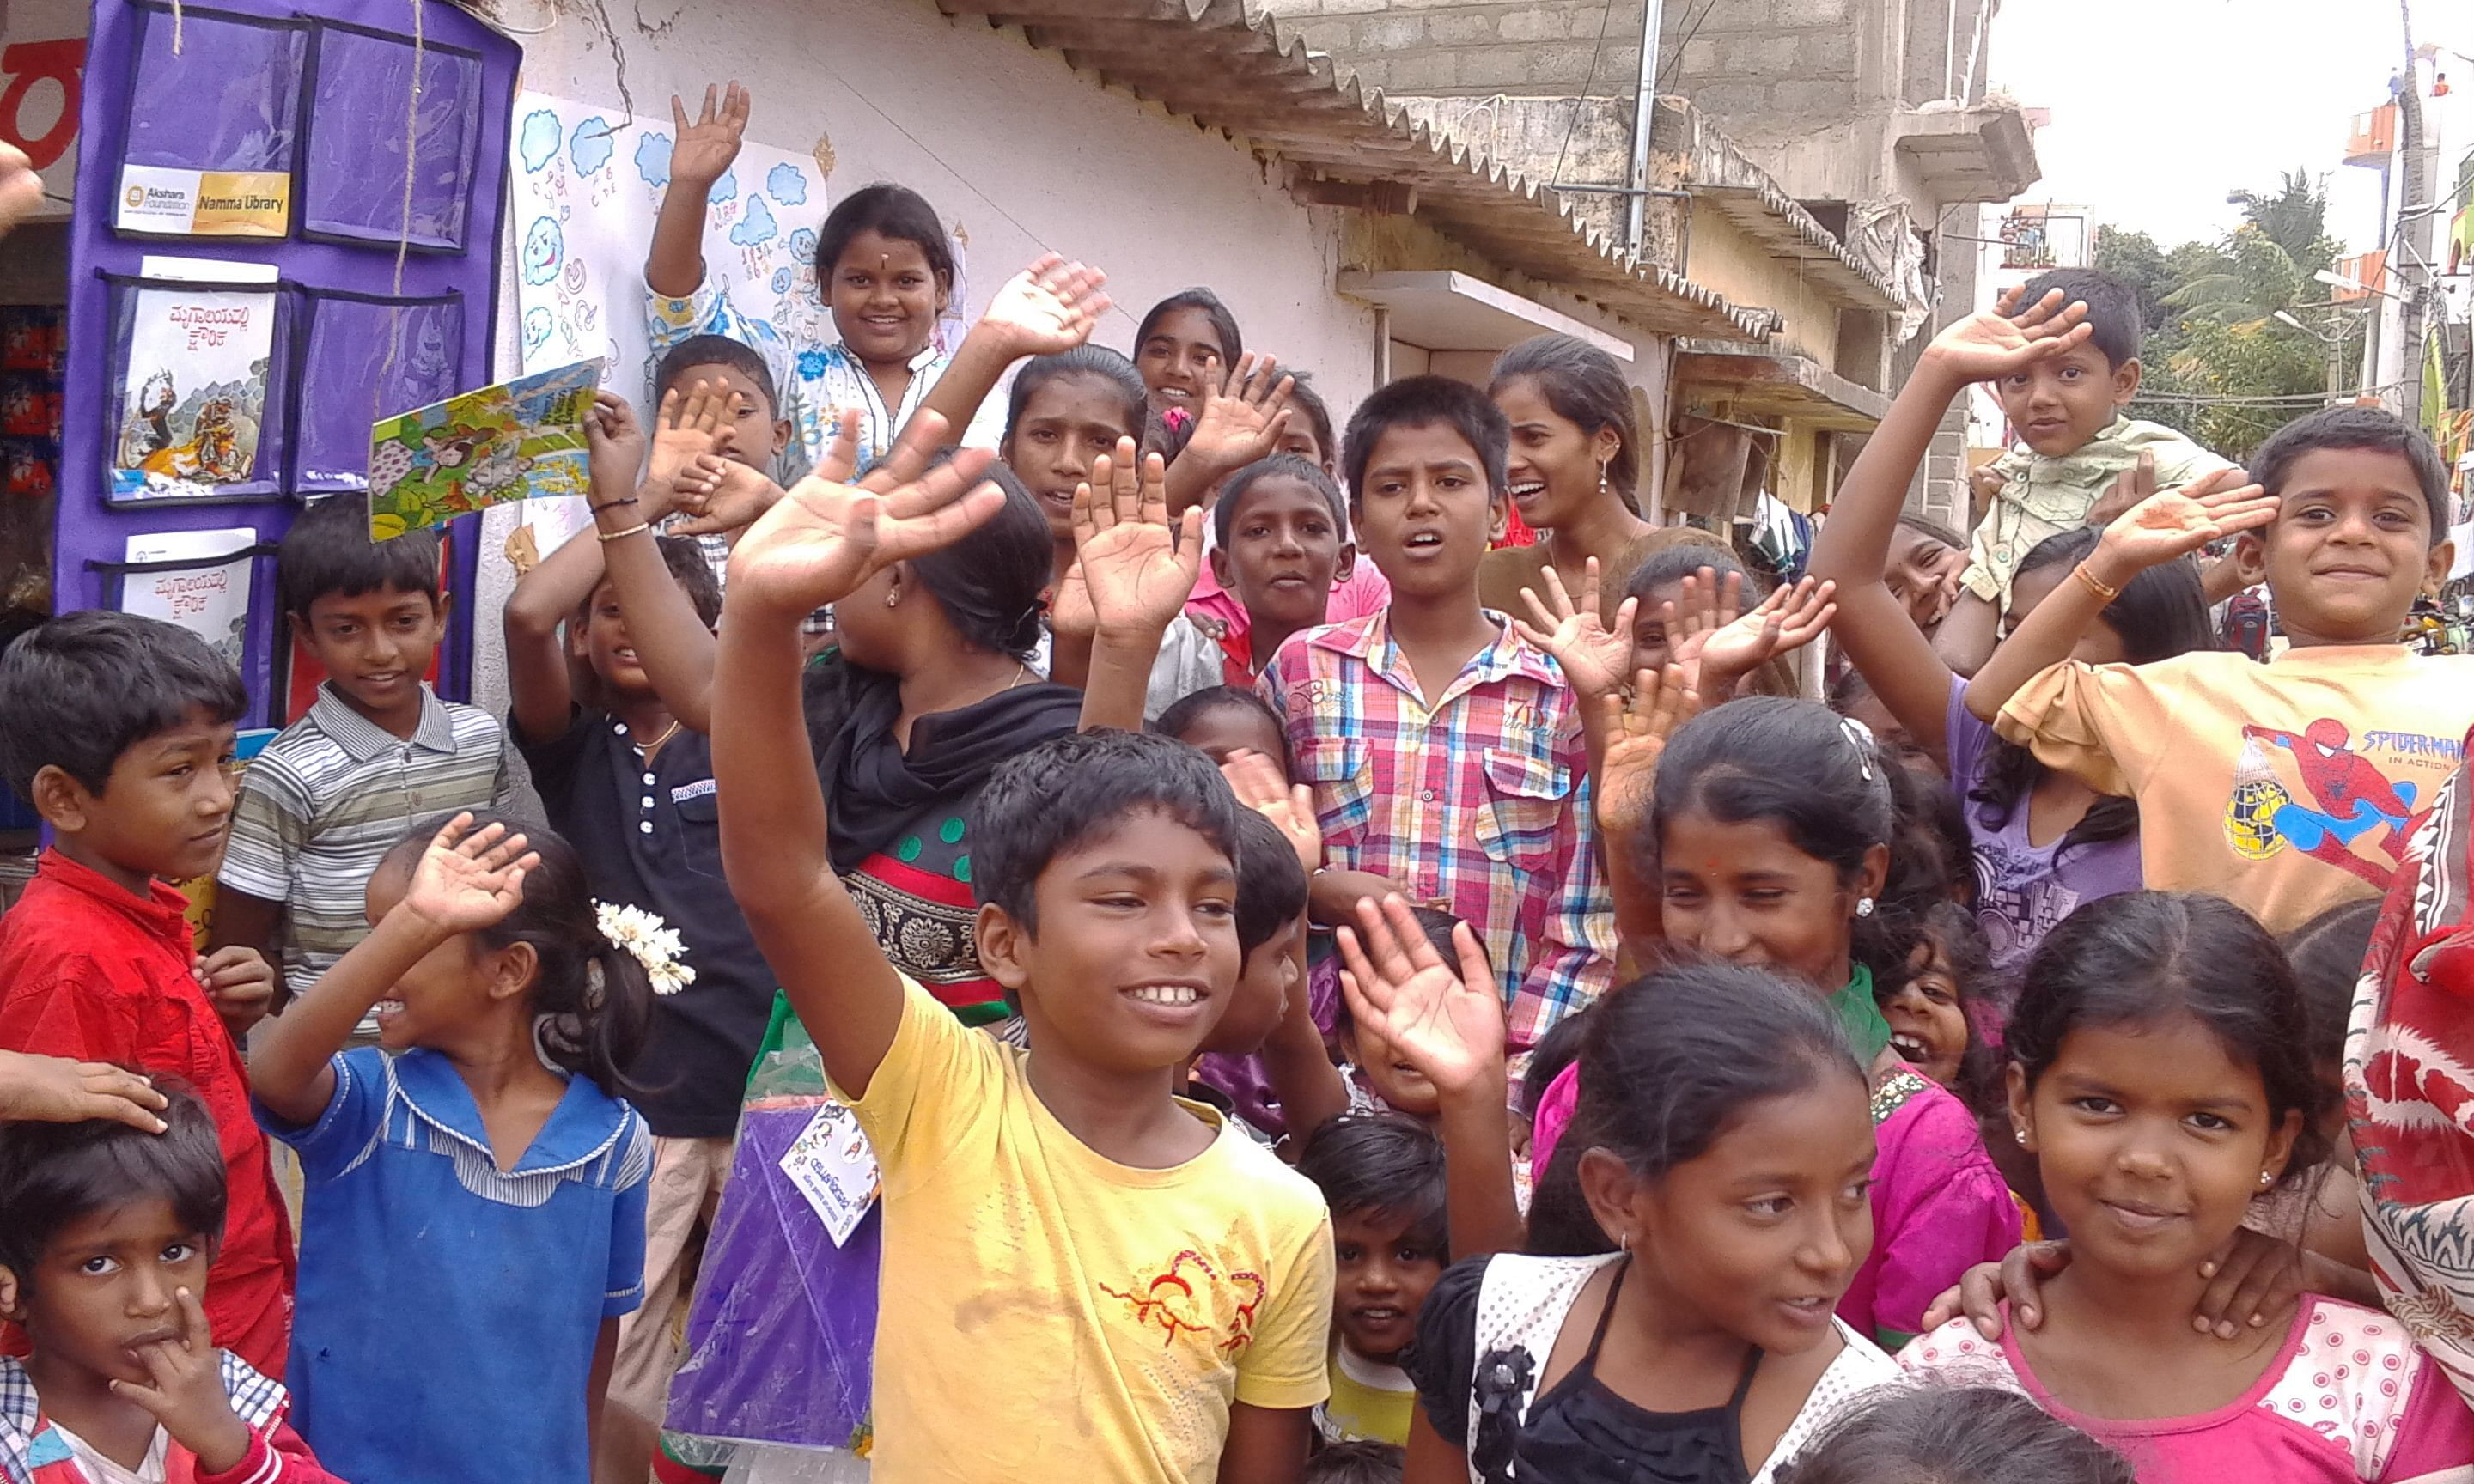 Various story telling sessions organized by the Akshara Foundation boost the confidence of kids as well as engages adults.